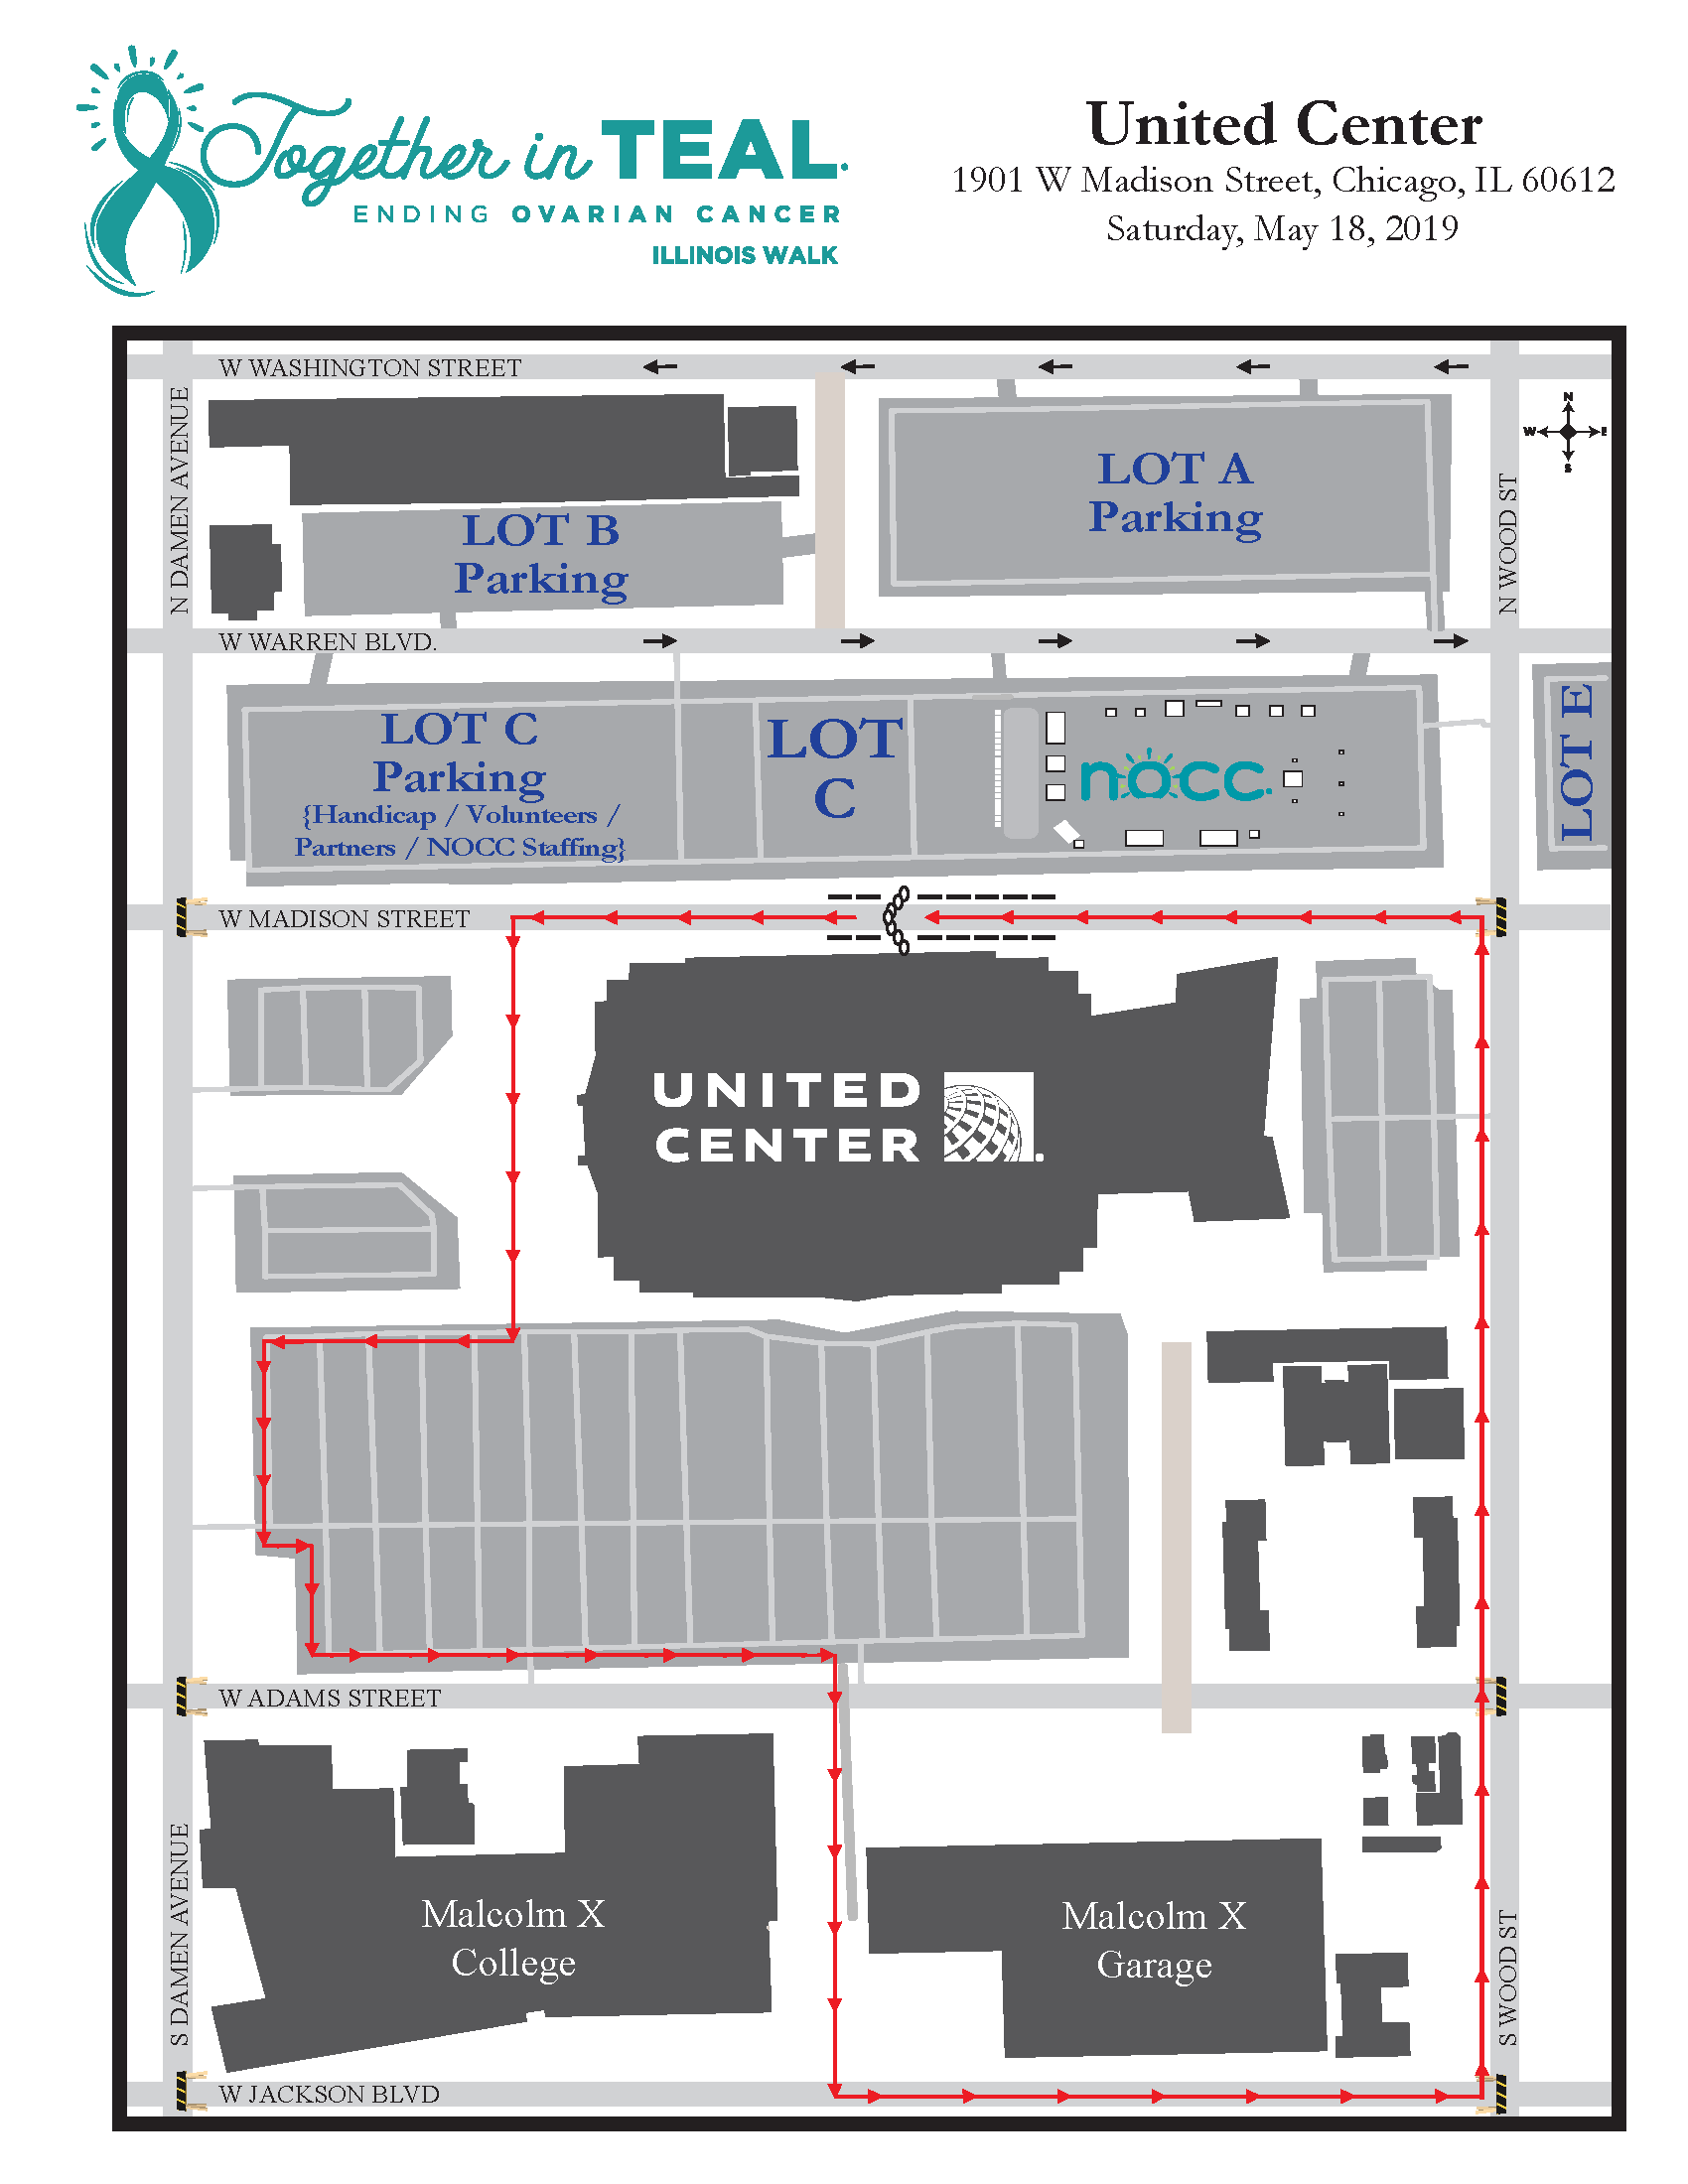 Maps and Parking - NOCC - Illinois Walk Chicago Street Parking Map on